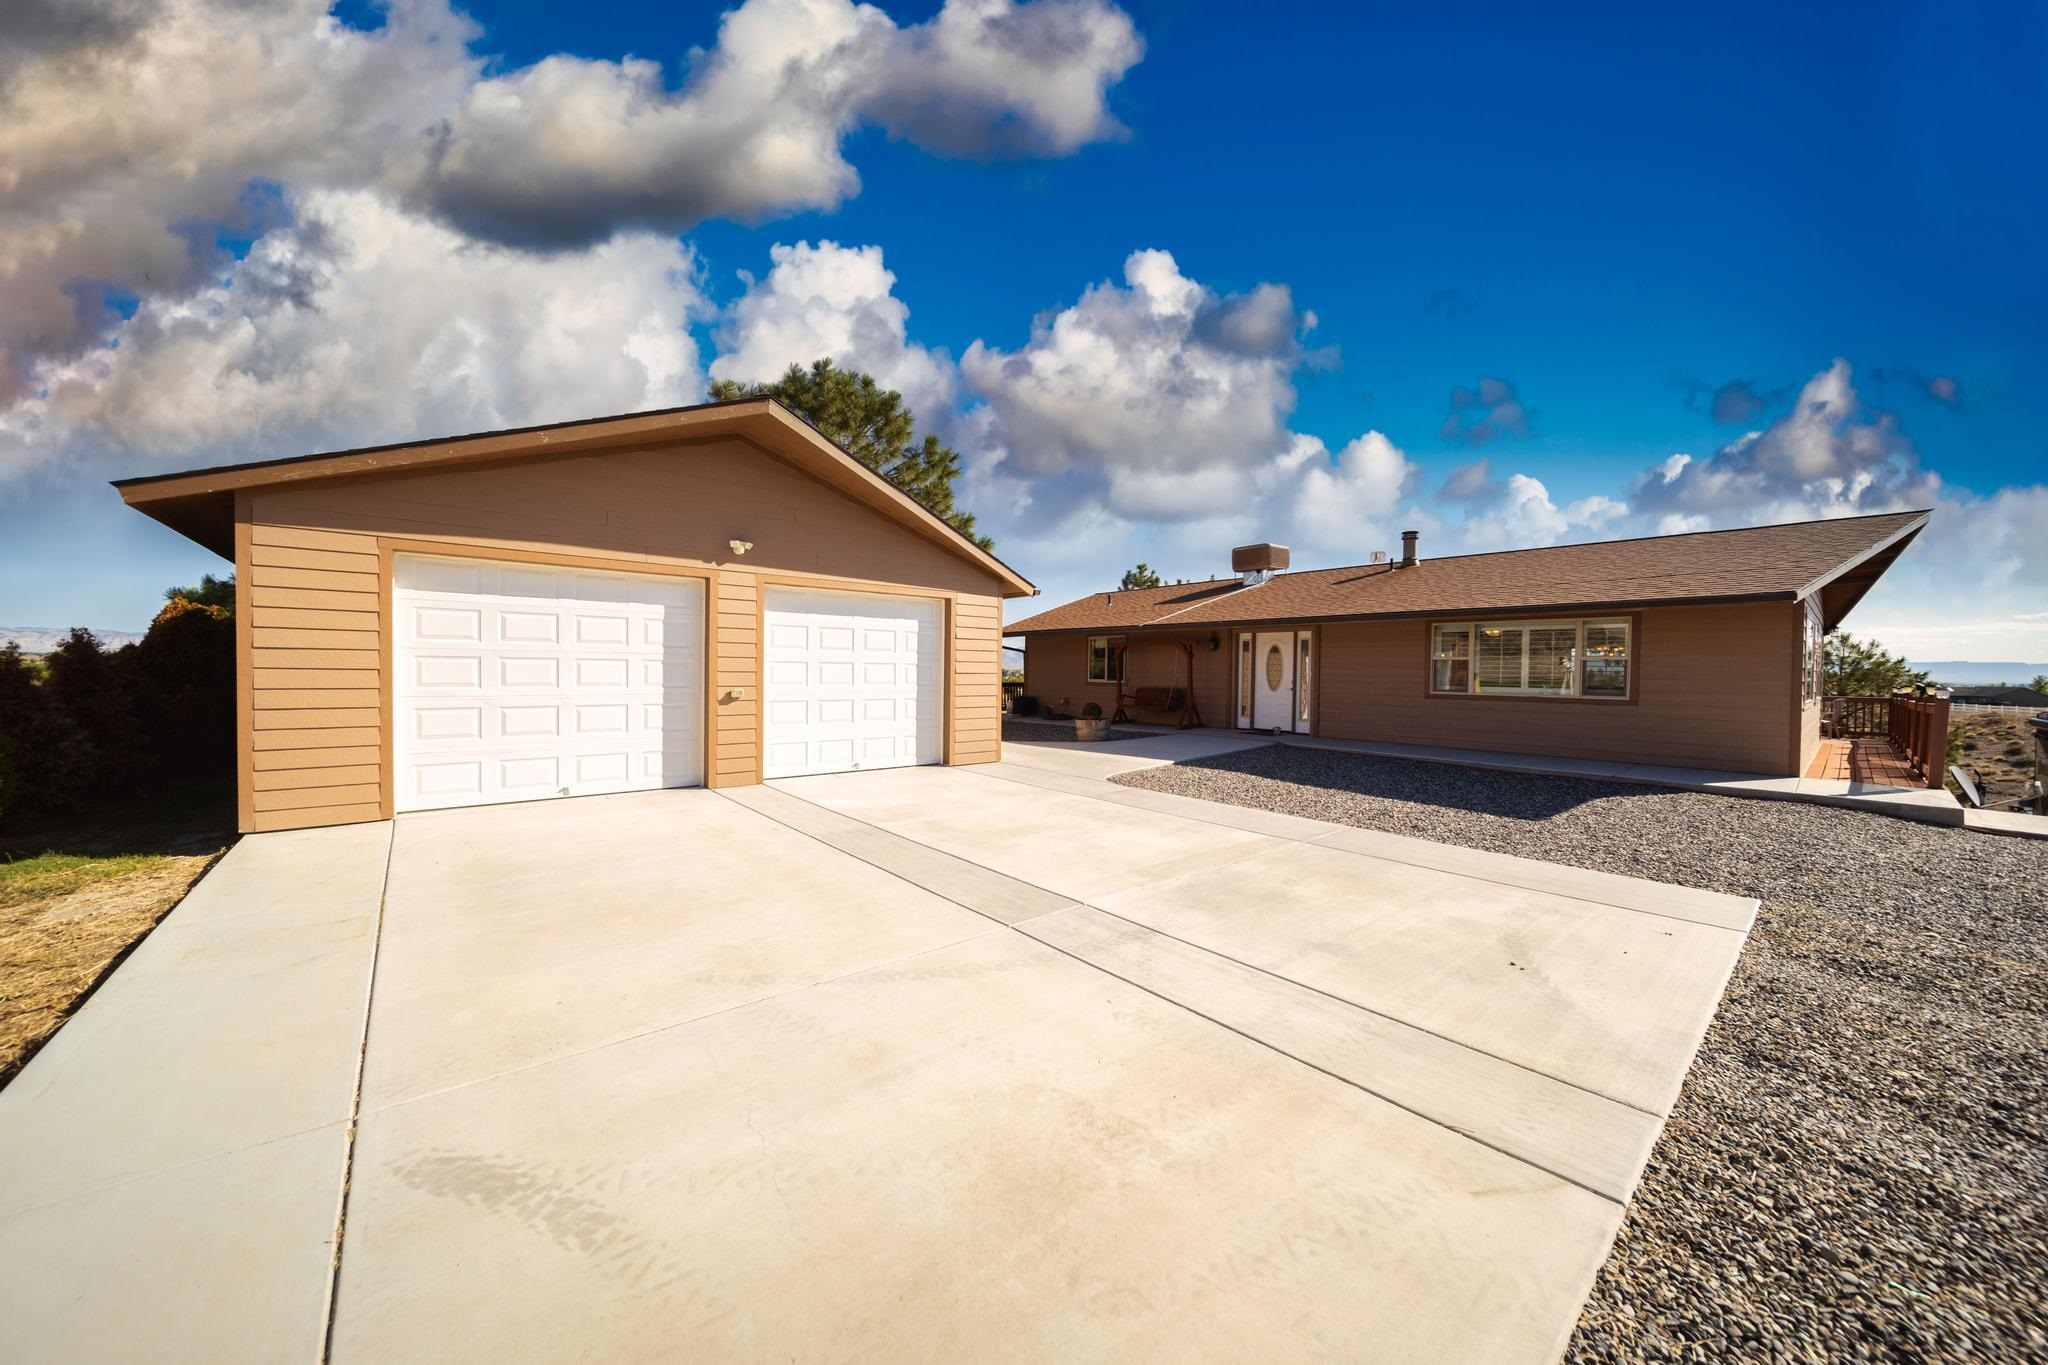 SHOWINGS WILL START ON MONDAY 9/20/2021.  Walkout Ranch style home, with 3 beds plus an office, 2 1/2 Baths on 37.67 acres where 2 sides of the property border BLM land and State of Colorado Open Space and 15 irrigated acres through the Kiefer lateral.  Irrigation uses diesel powered irrigation pump with hydraulic propelled wheel and sprinkler system.   Views Galore can be enjoyed from the new kitchen or open living room and dining room through the lovely plantation shutters or you can enjoy the views from the wrap around Trex deck. Store your harvest goodies in the canning pantry, tinker in the workshop or in the detached oversized 2 car garage. In-ceiling radiant heat and wood burning stove make it cozy in cooler temperatures. Storage shed, 5 stall horse shelter, lots of PRIVACY and VIEWS.